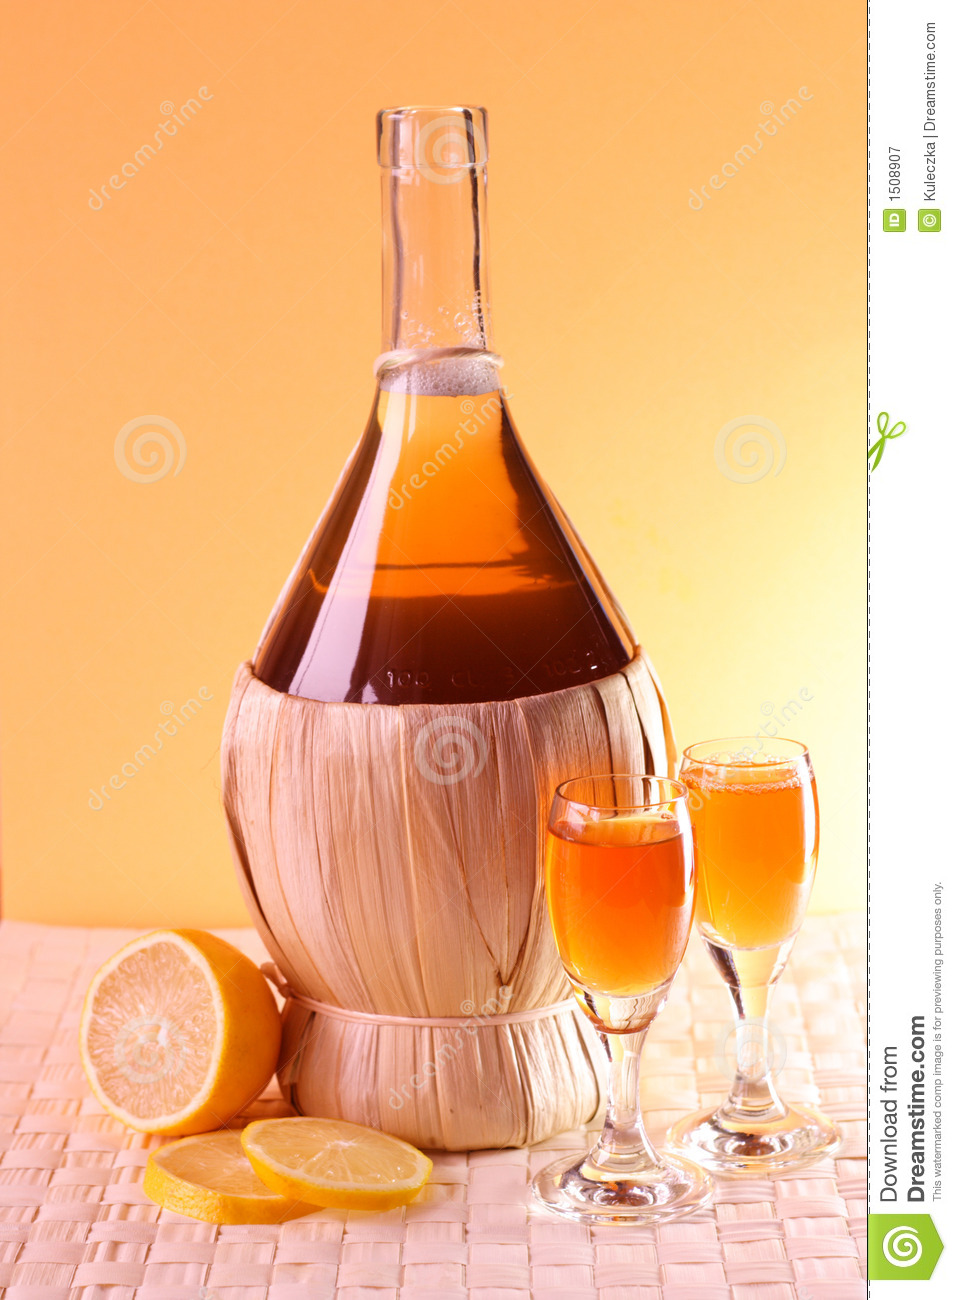 Importing Beverage Alcohol